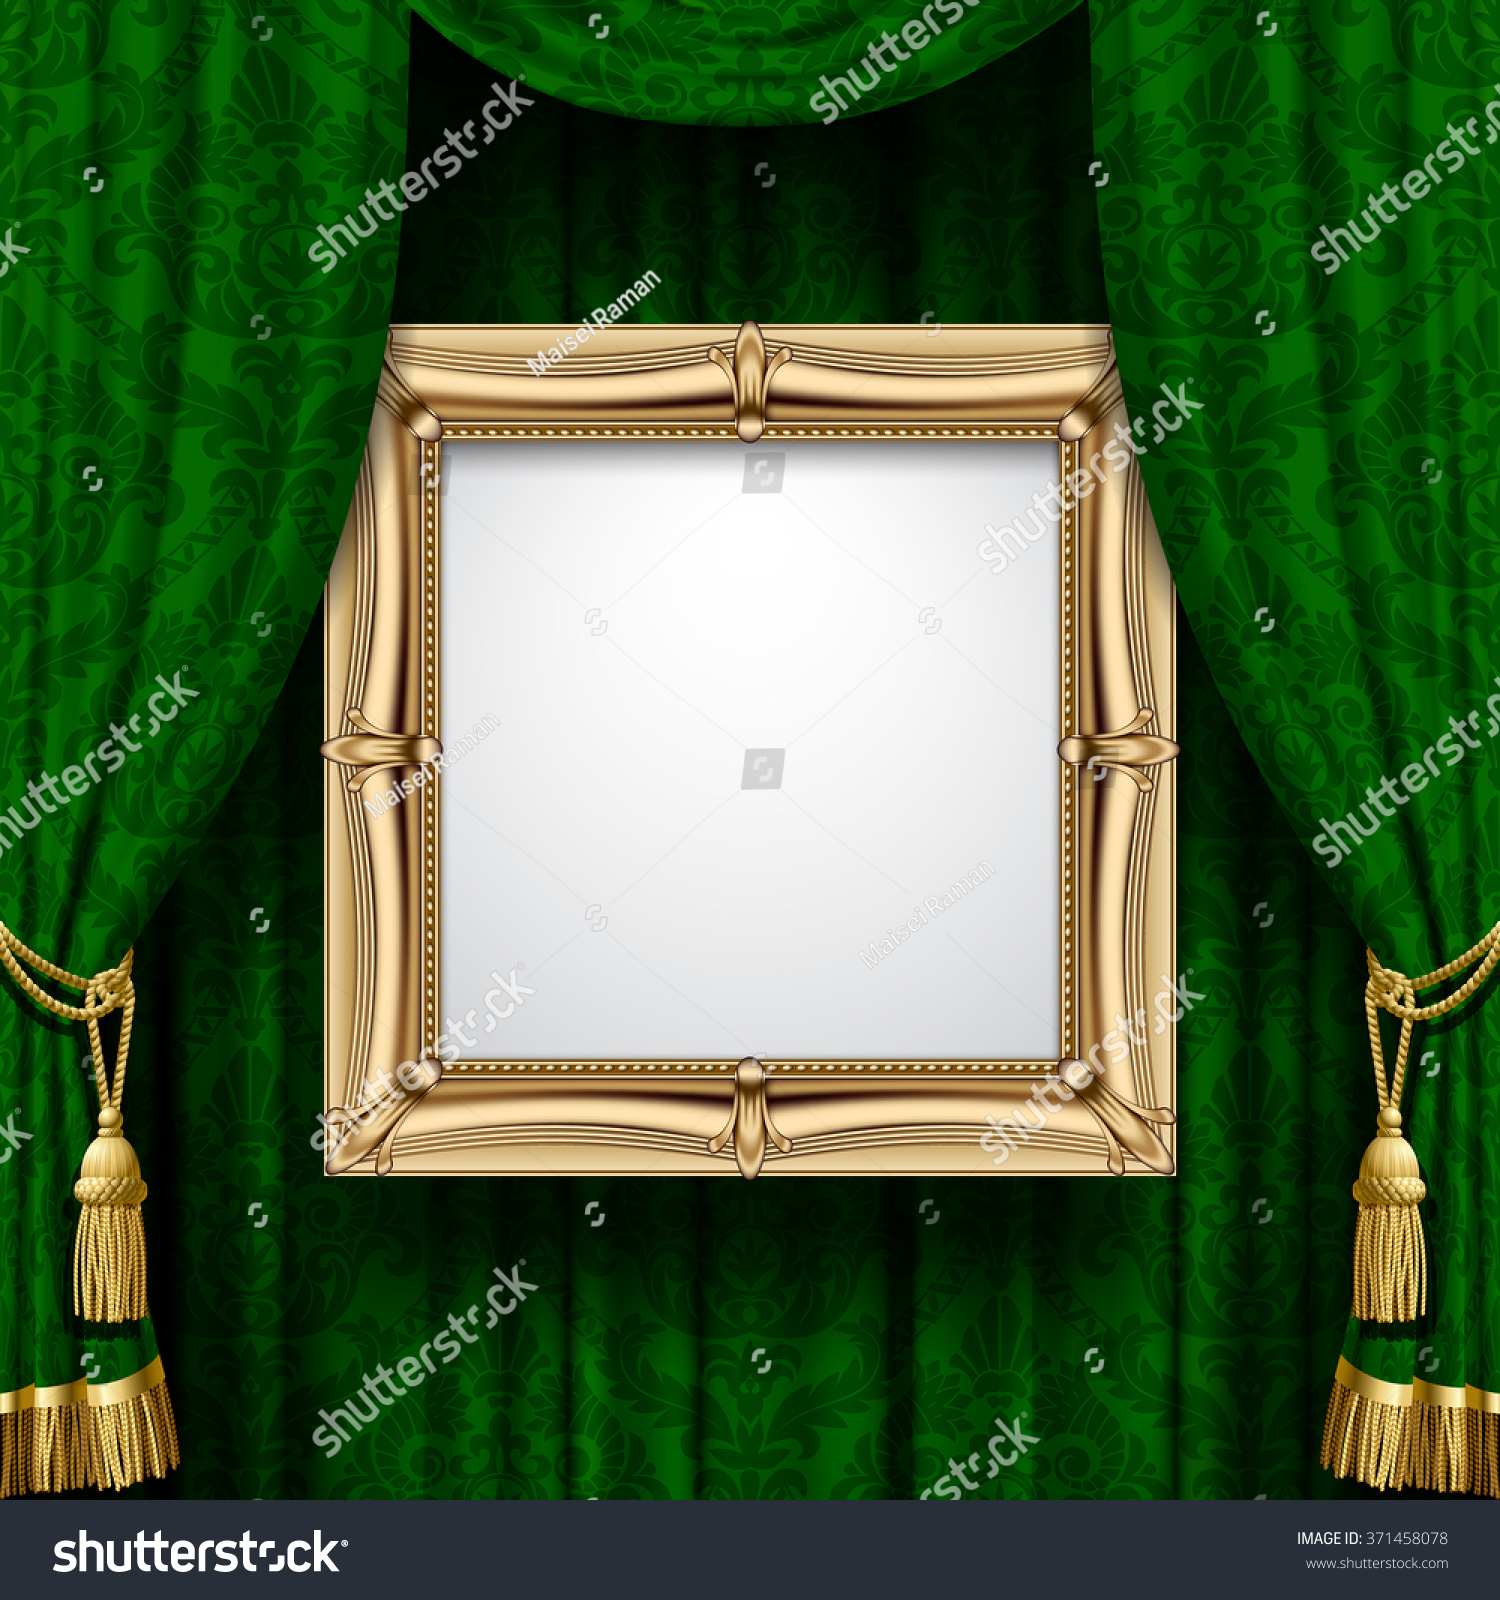 suspended gold frame on the ornamental green curtain background square presentation artistic poster and placard